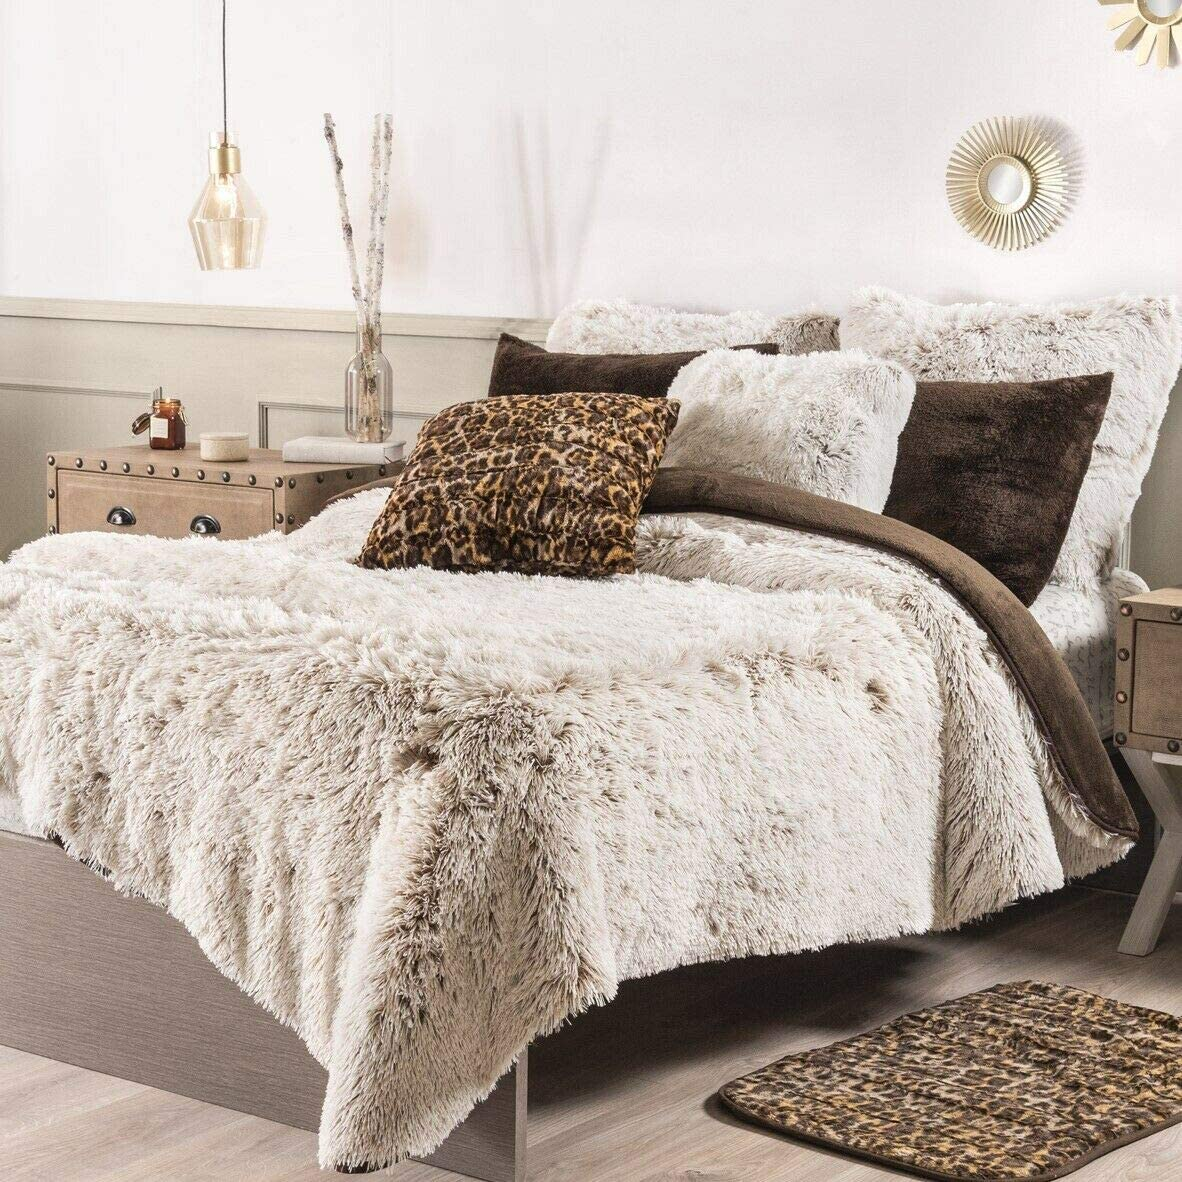 DreamPartyWorld National products 35% OFF White Winter Shaggy Blanket King with Sherpa Siz